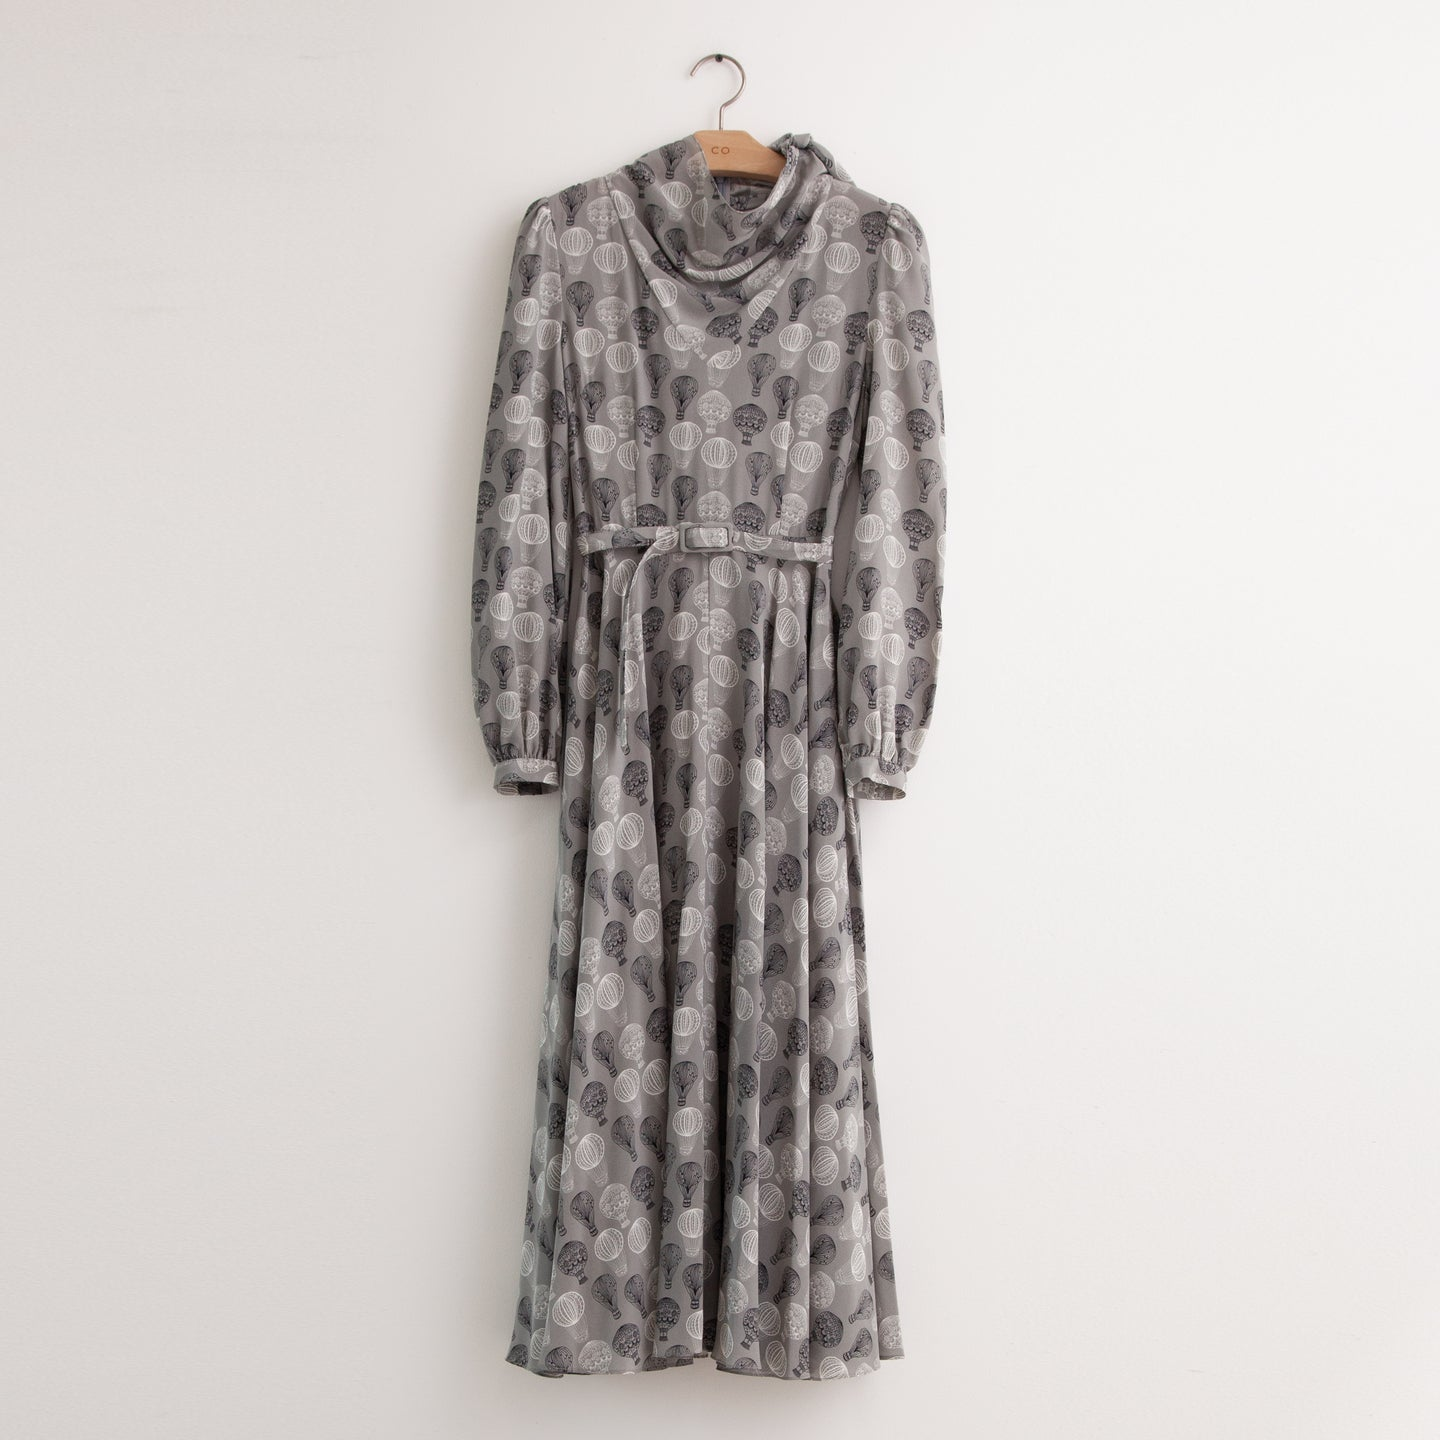 Long sleeve belted shirt dress in grey silk balloon print - CO